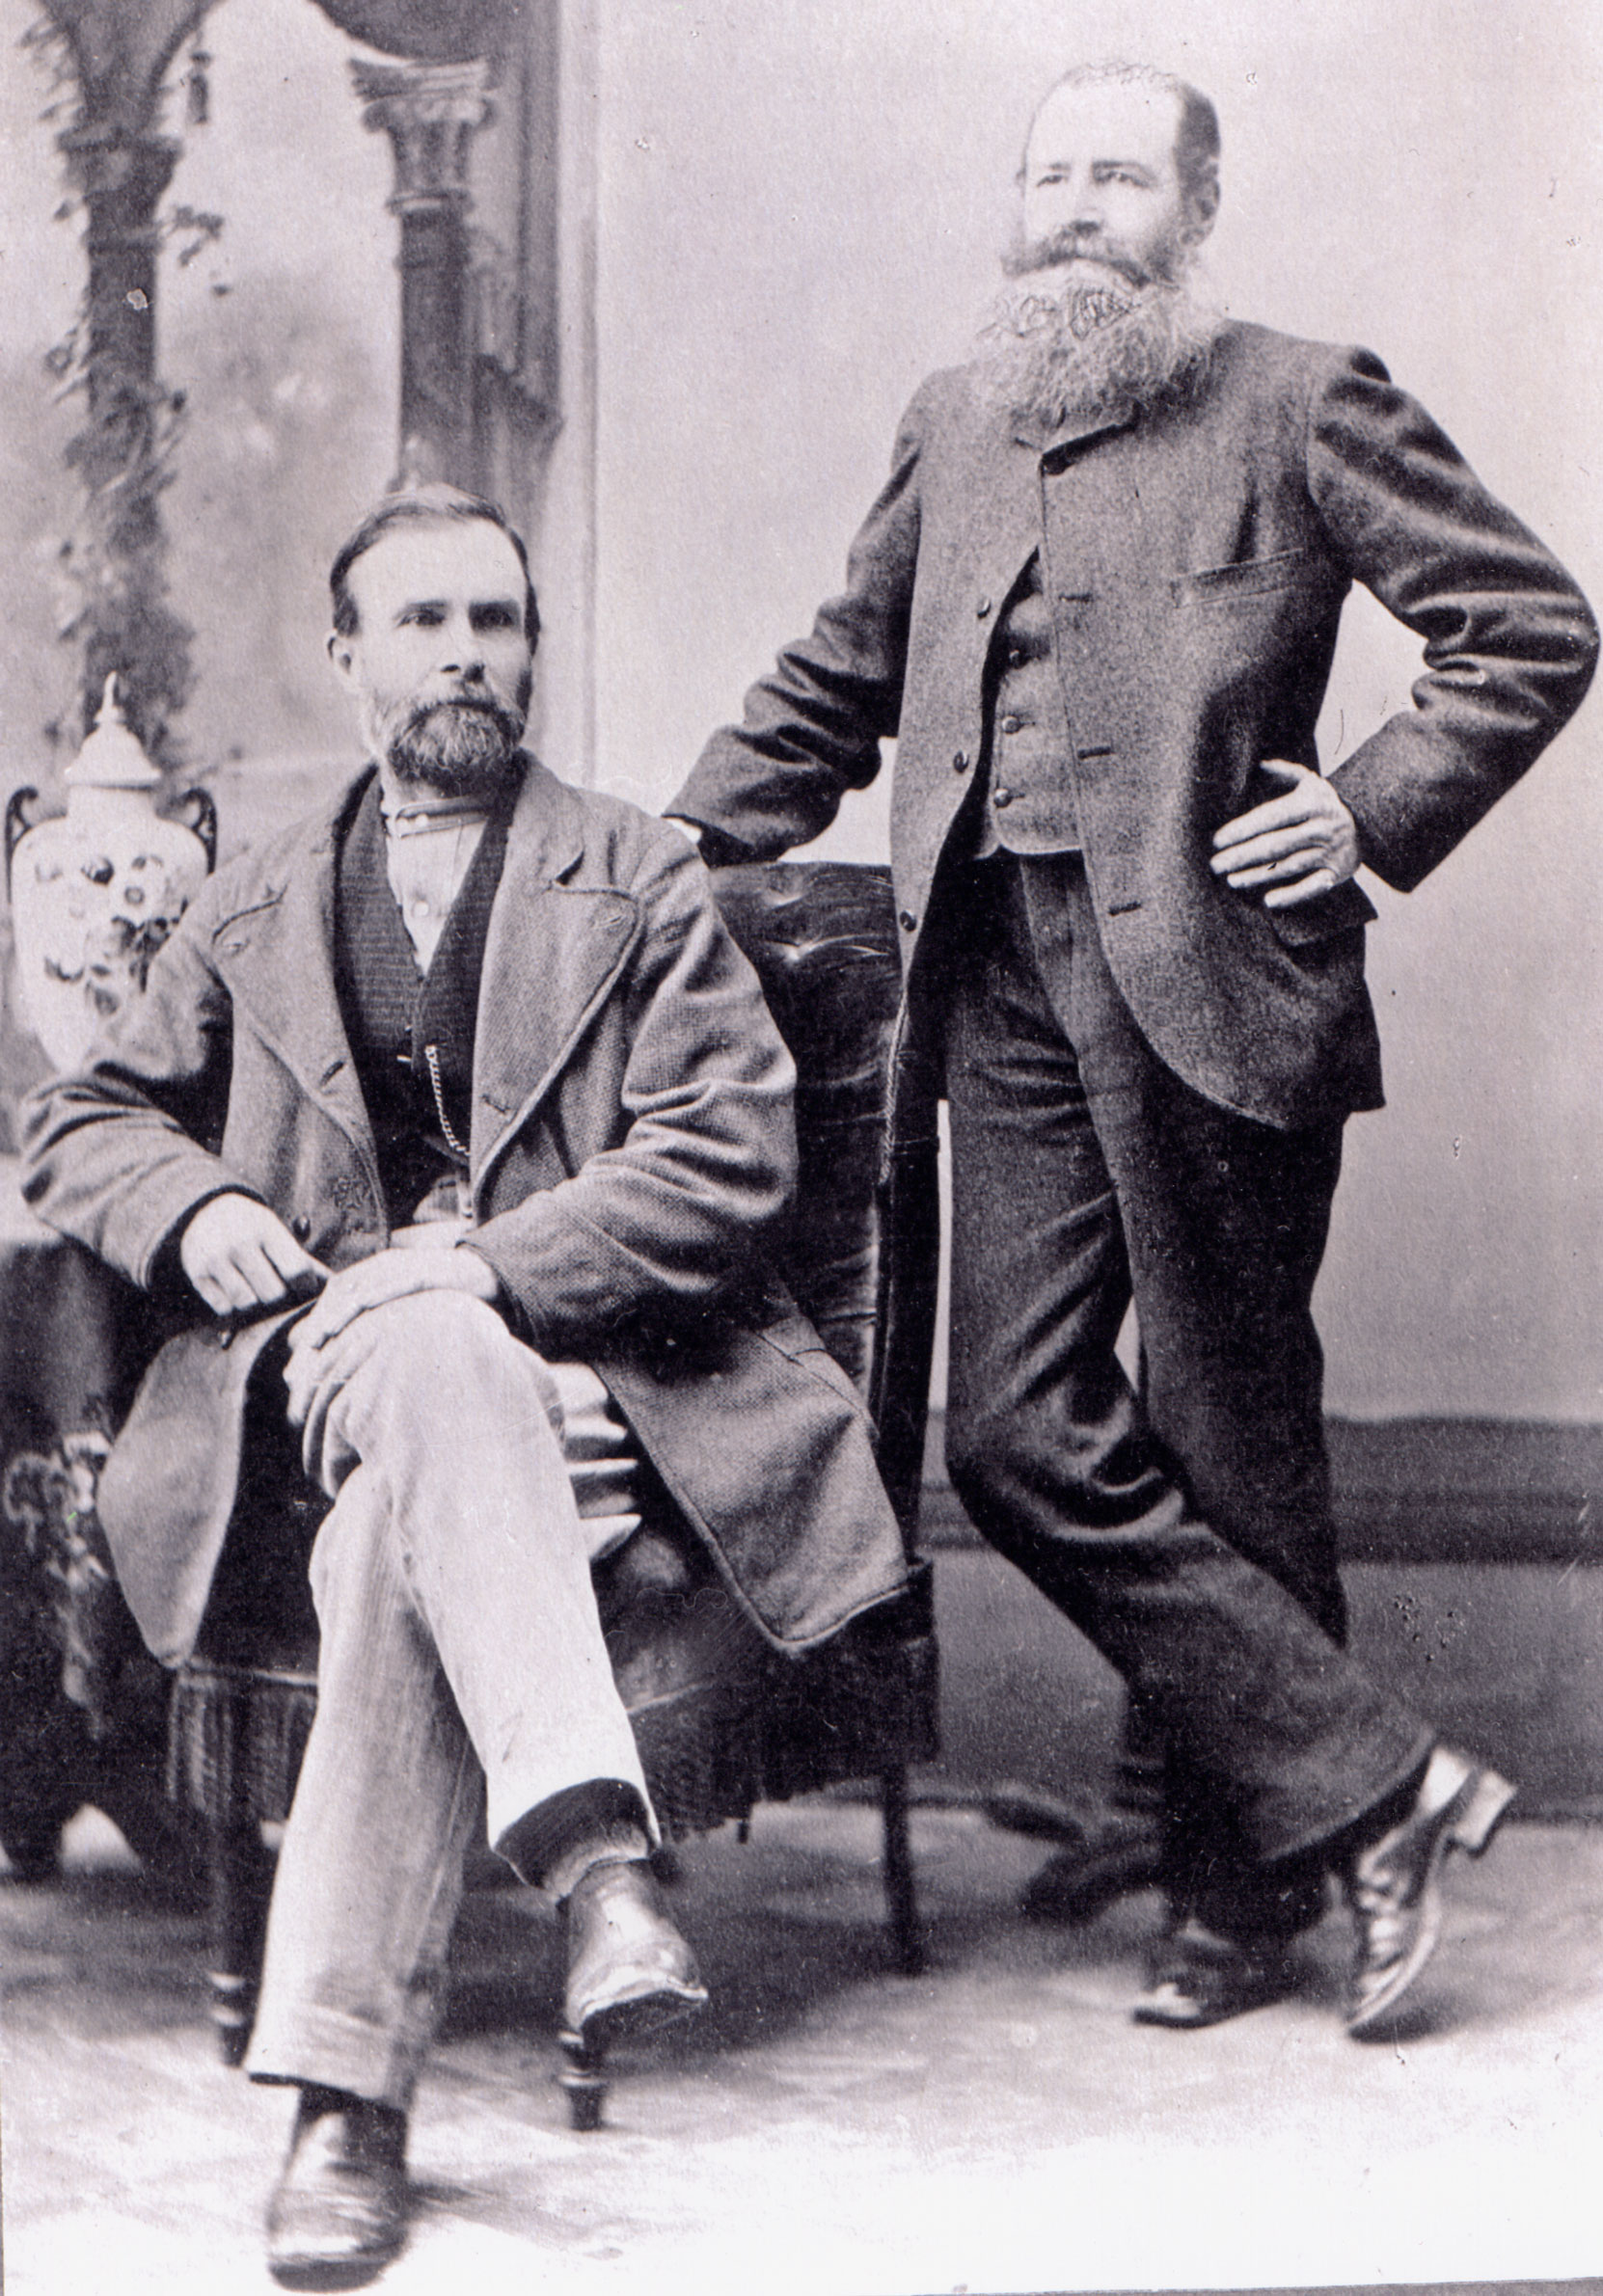 Peter Fernie (standing) and William Fernie (seated), circa 1870 (BC Archives photo A-02147)